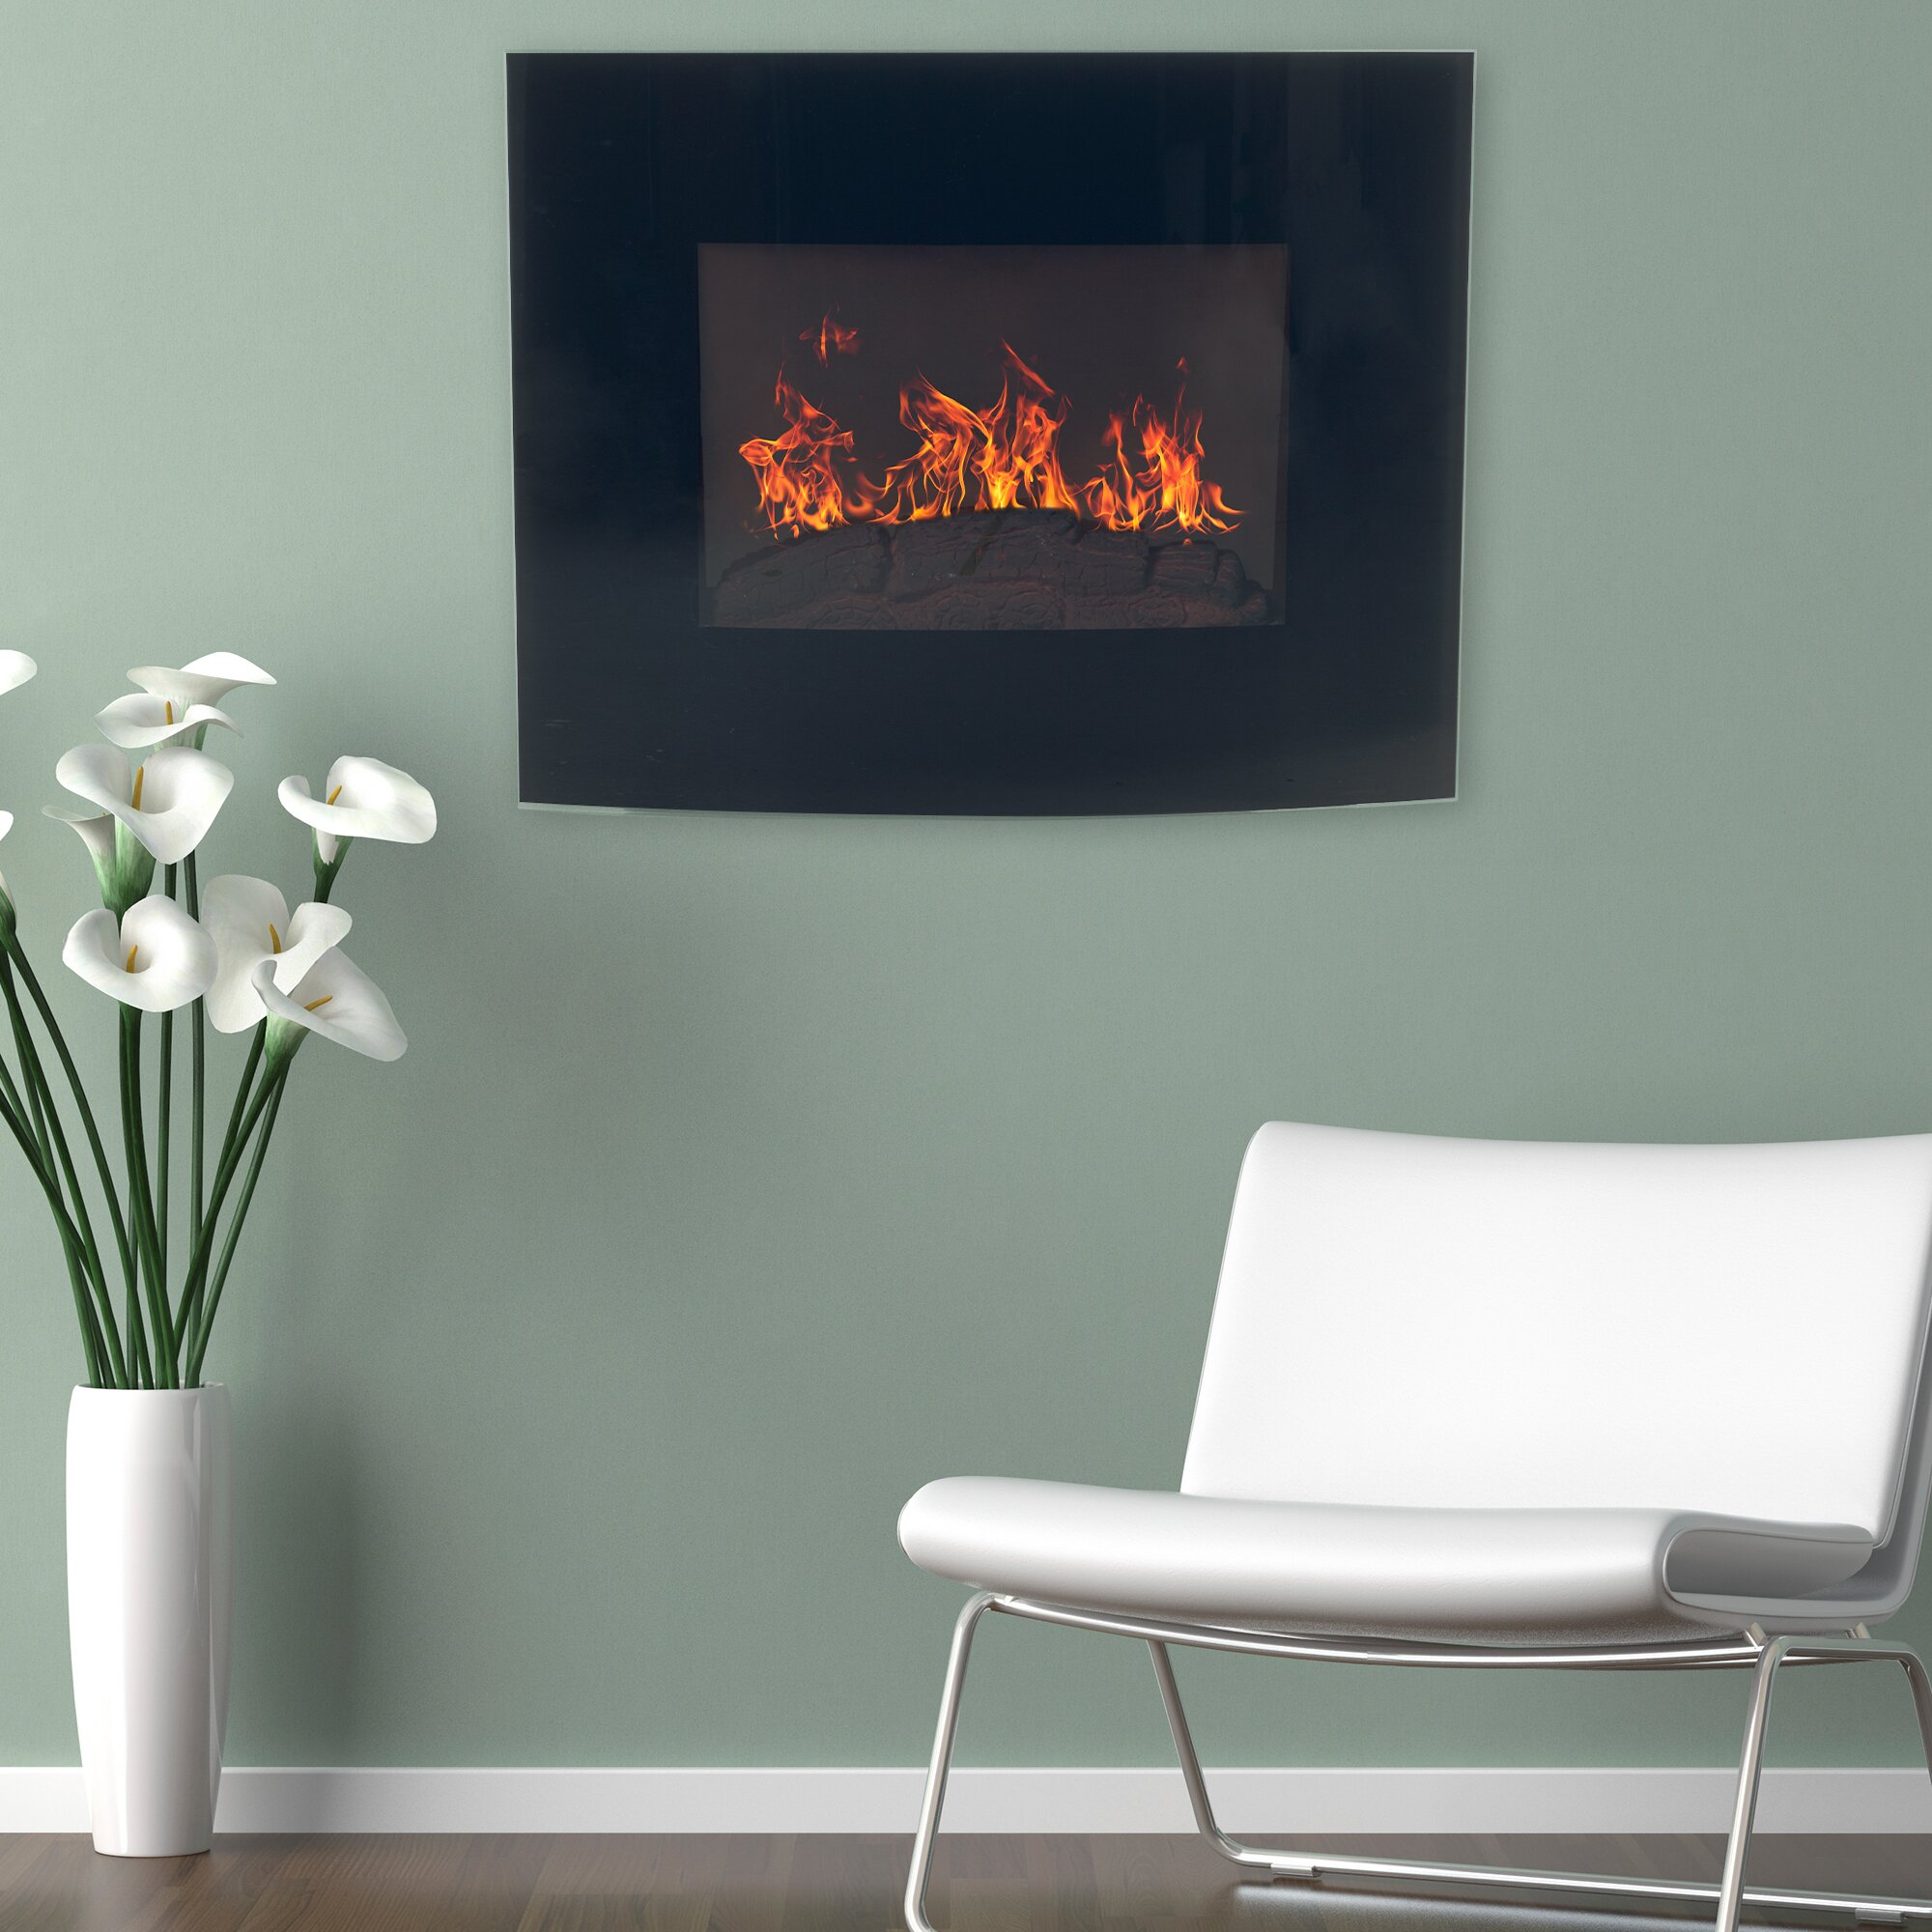 Northwest curved wall mount electric fireplace reviews for Curved wall